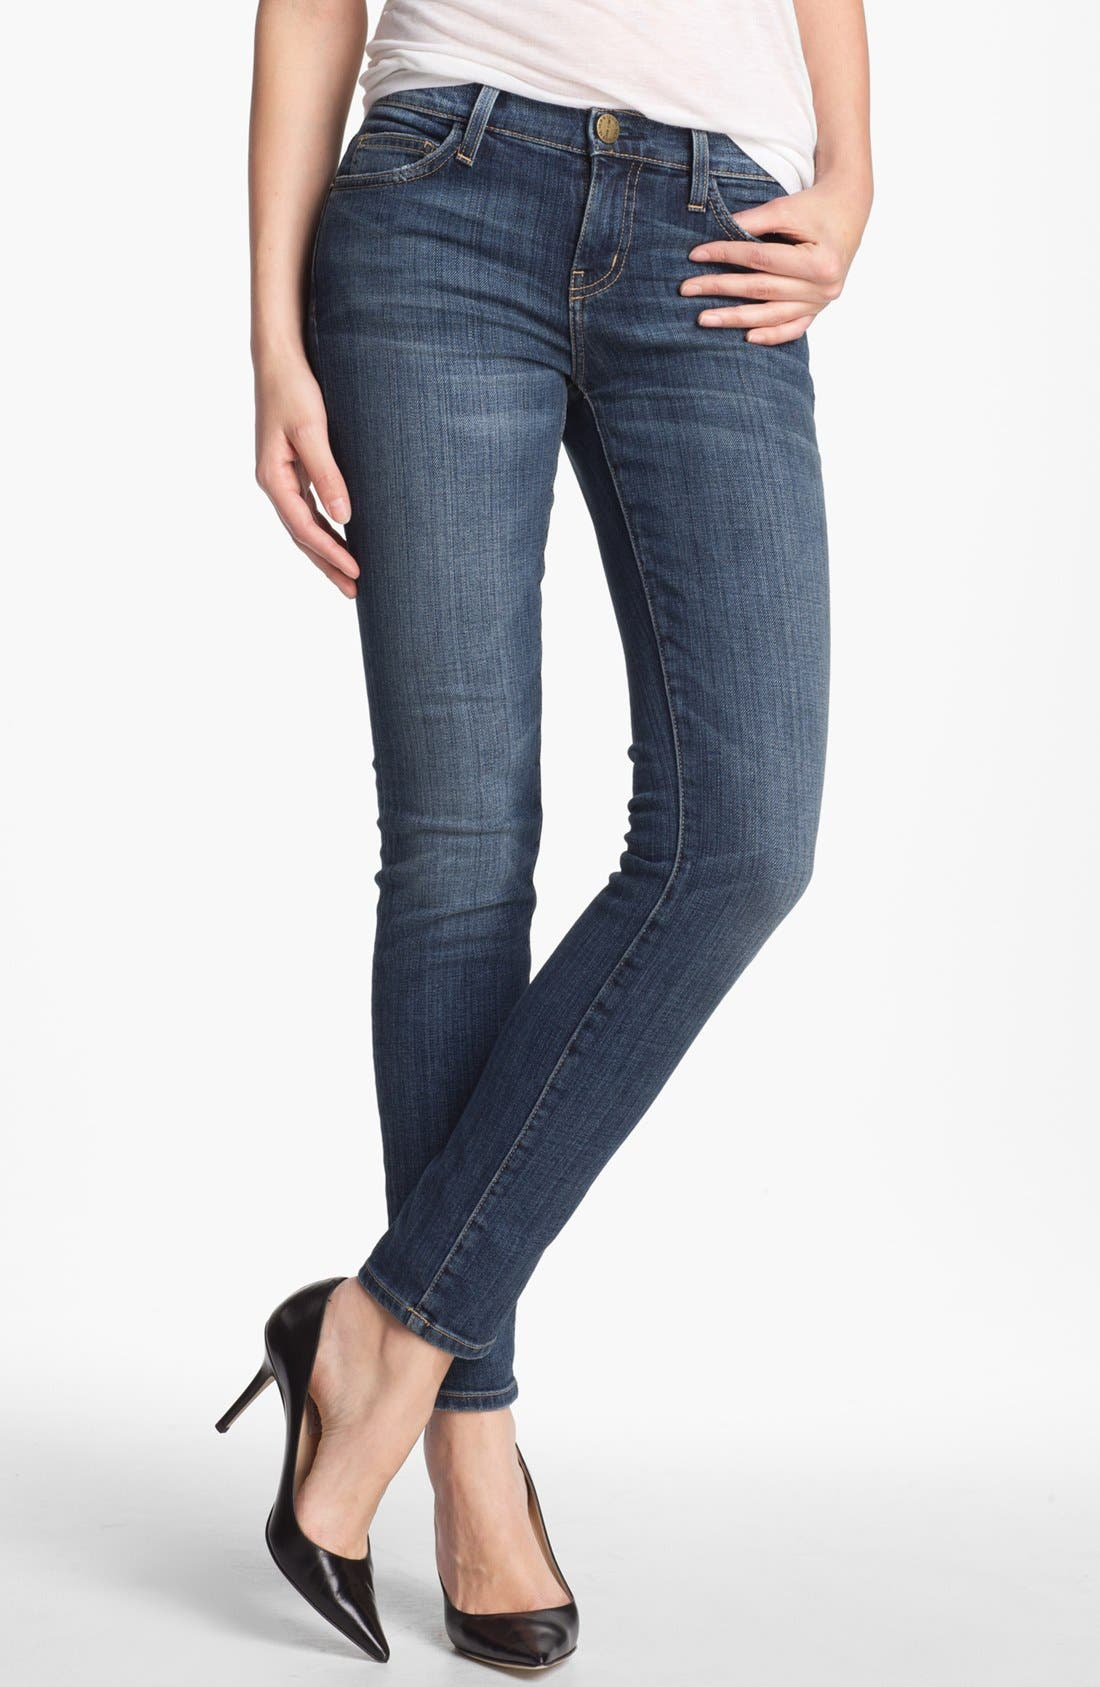 Alternate Image 1 Selected - Current/Elliott 'The Ankle' Skinny Jeans (Loved)